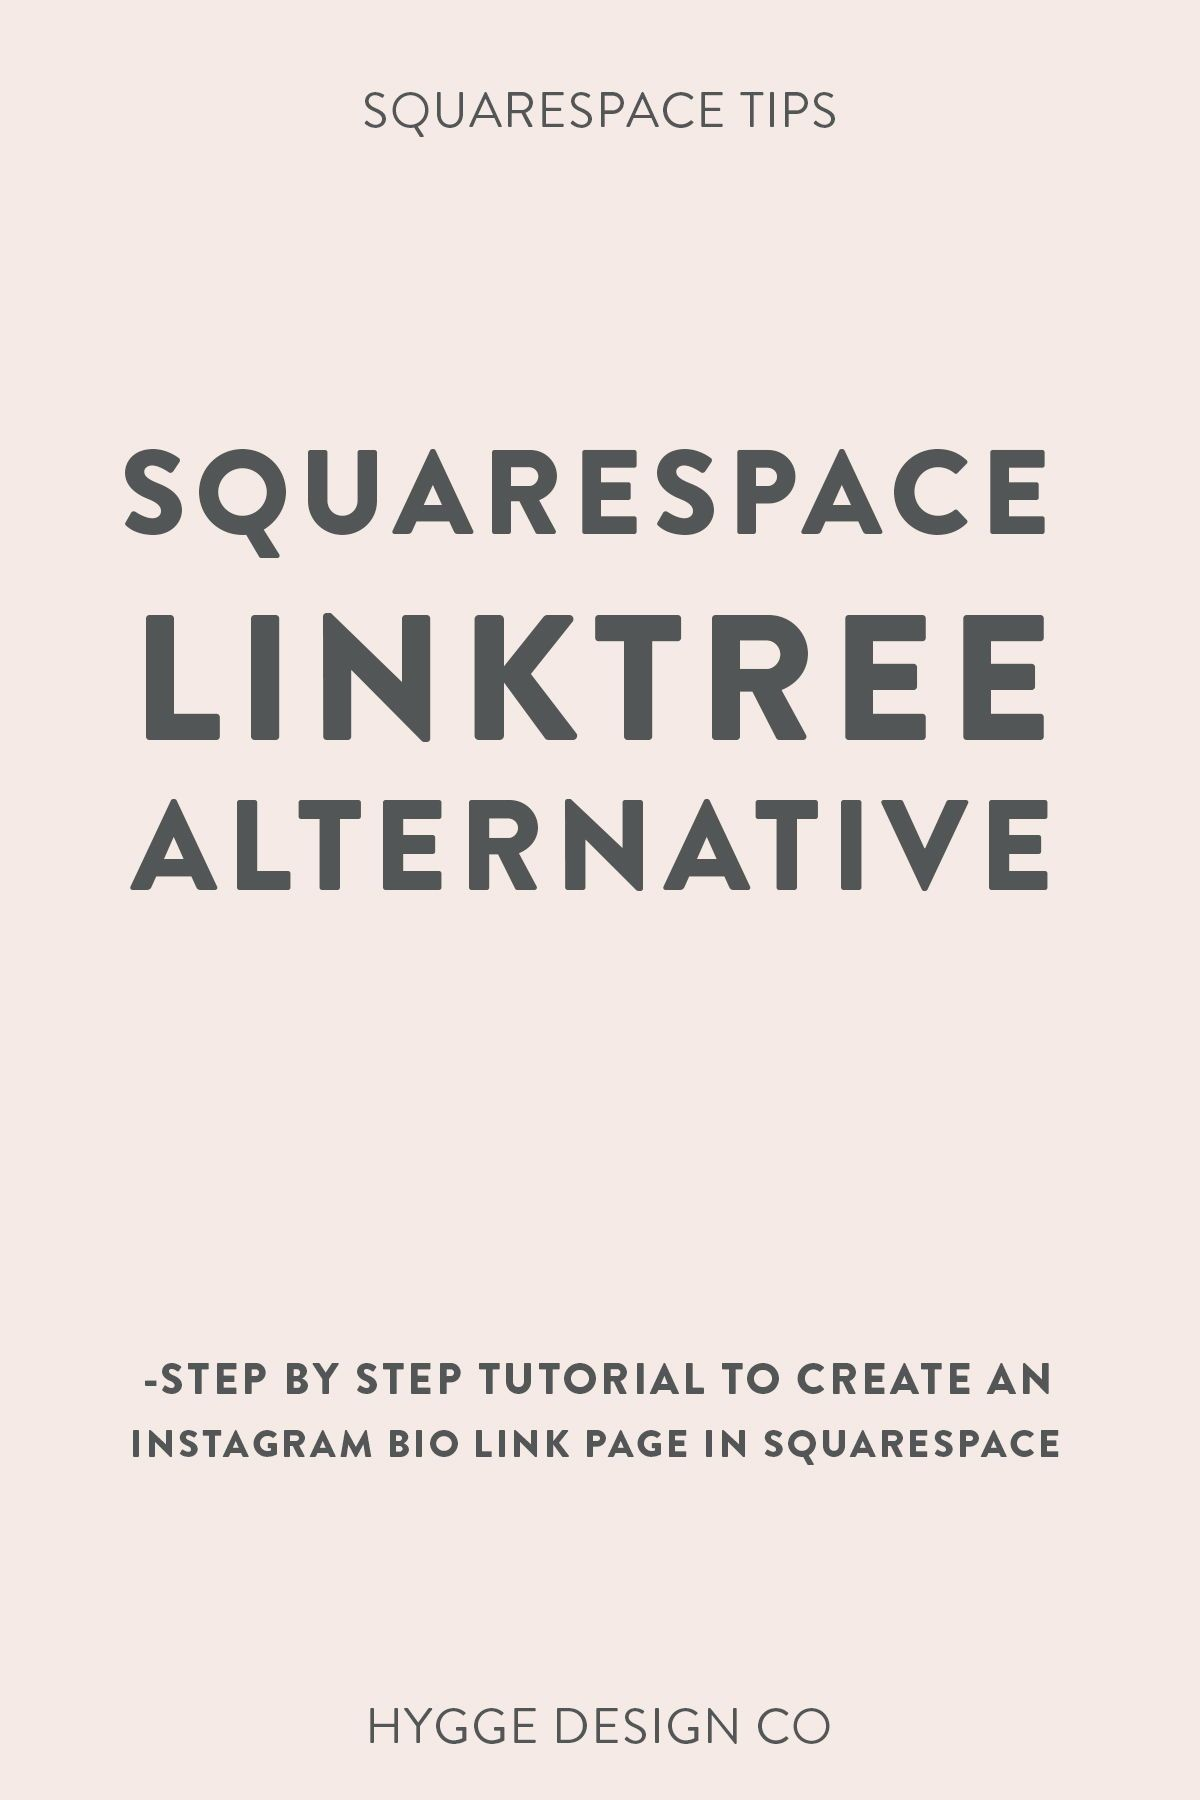 Squarespace Linktree Hack hyggedesign.co Squarespace